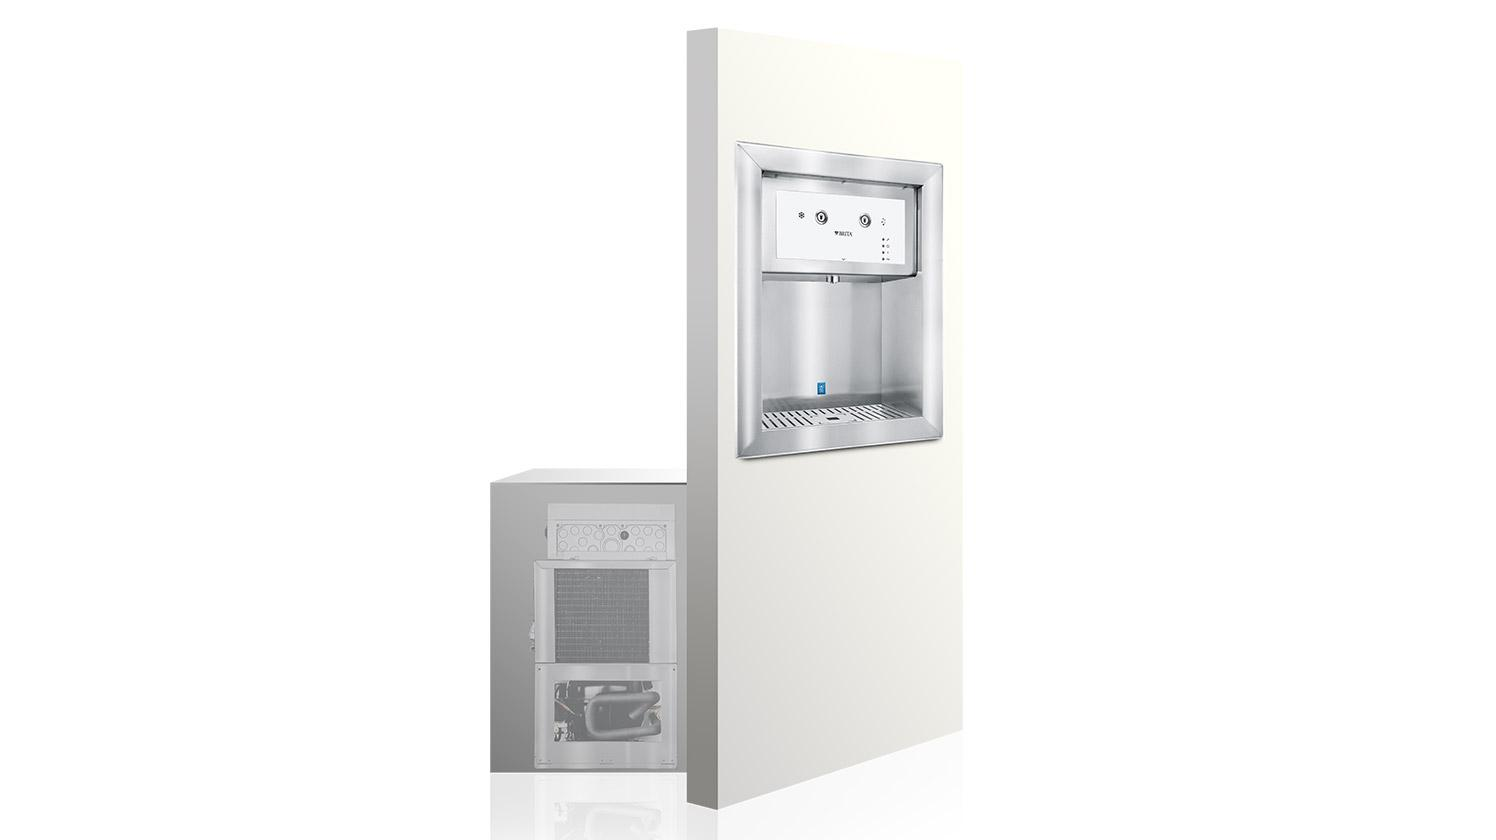 A product shot of BRITA Aquarite inwall system.